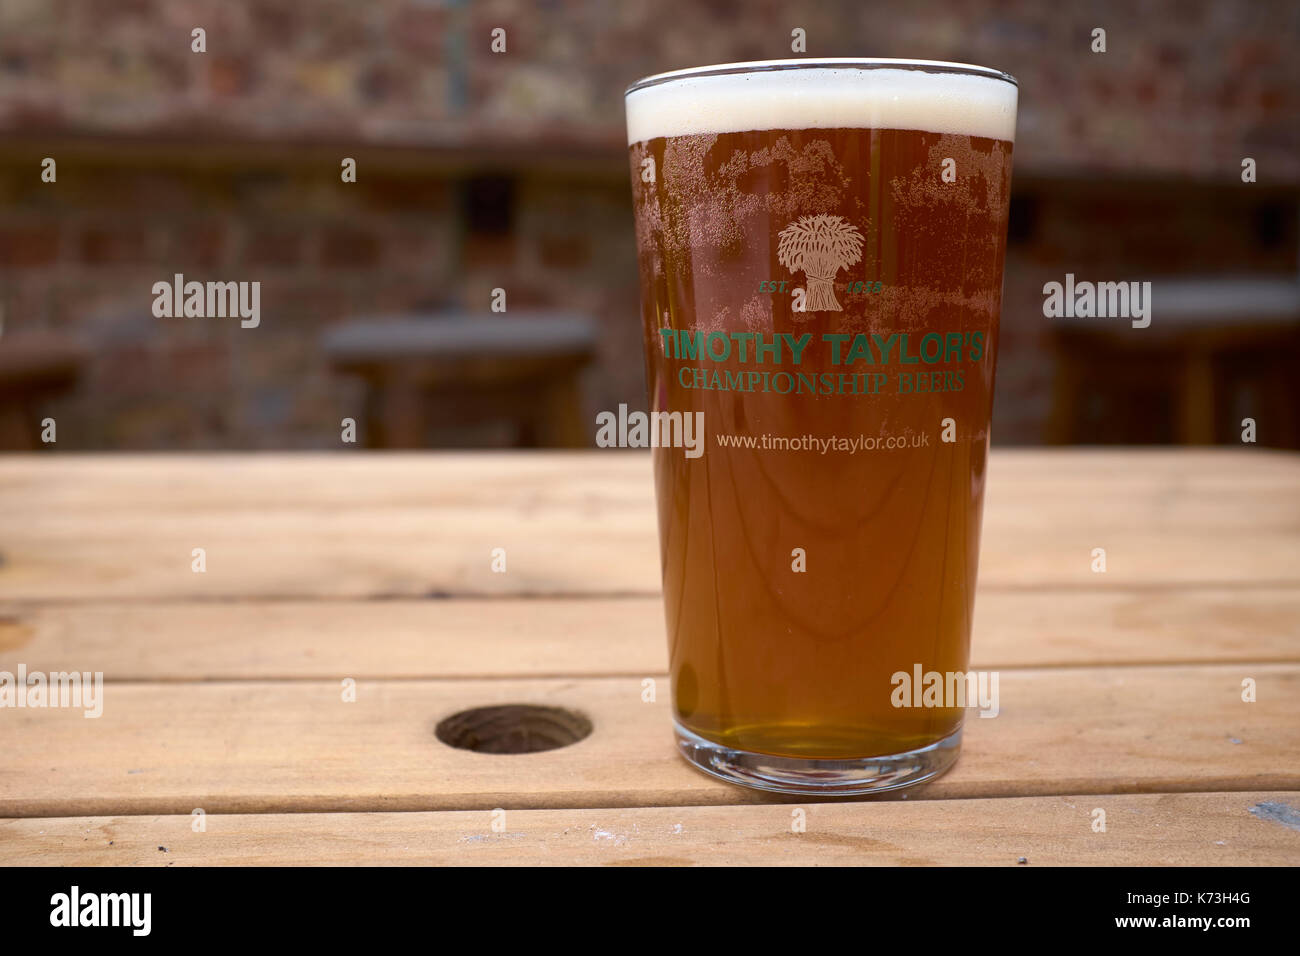 Pint of Timothy Taylor's bitter on a wooden table, Yorkshire, United Kingdom - Stock Image